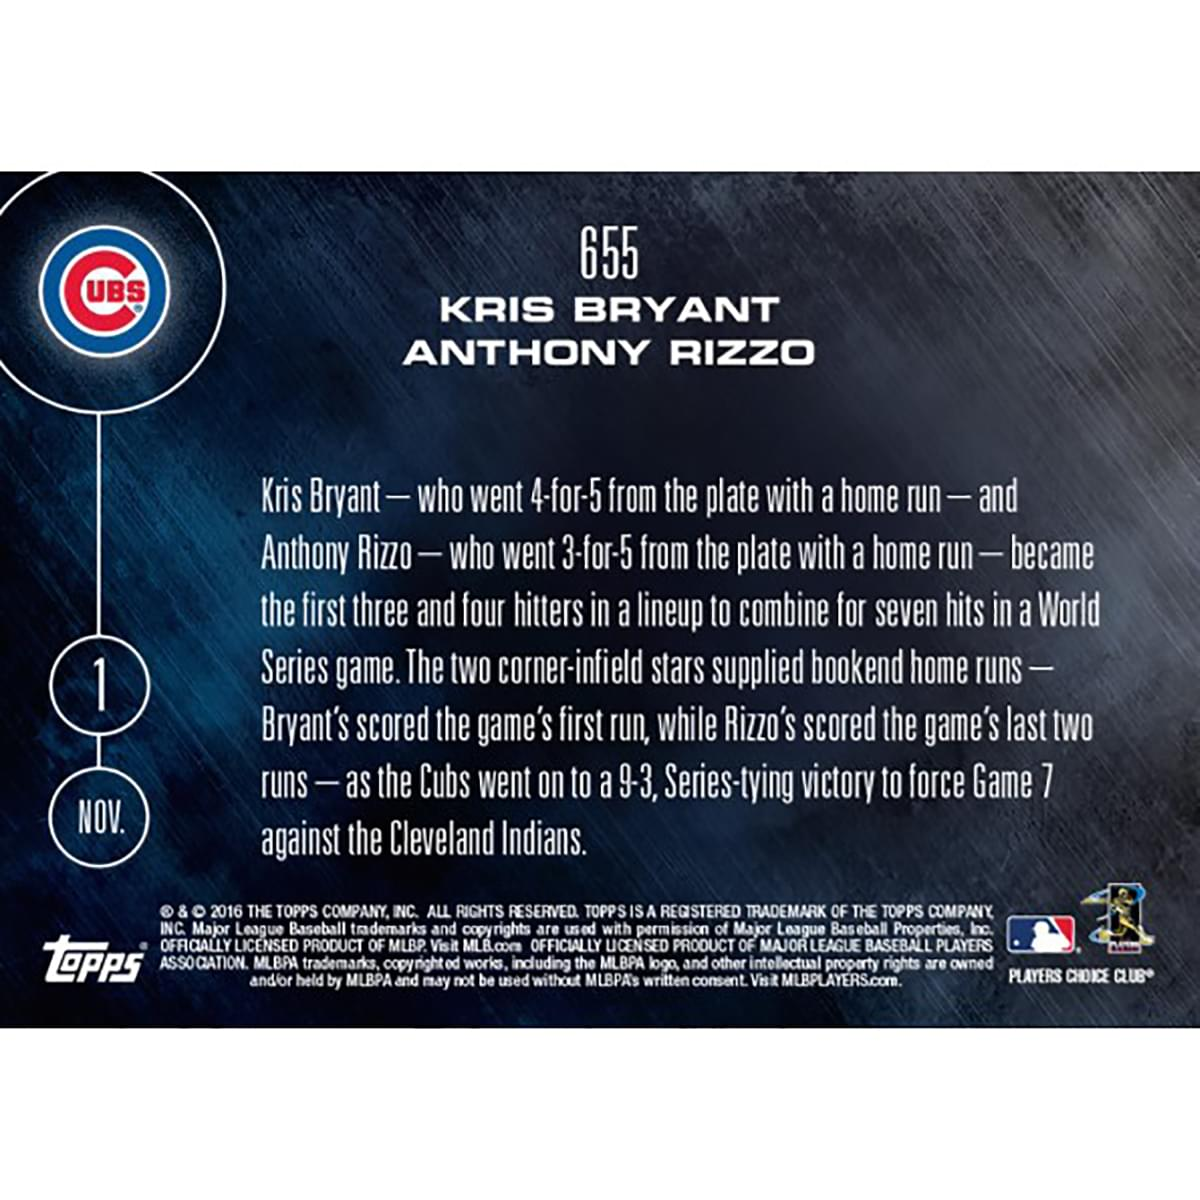 MLB Chicago Cubs Kris Bryant/ Anthony Rizzo #655 2016 Topps NOW Trading Card